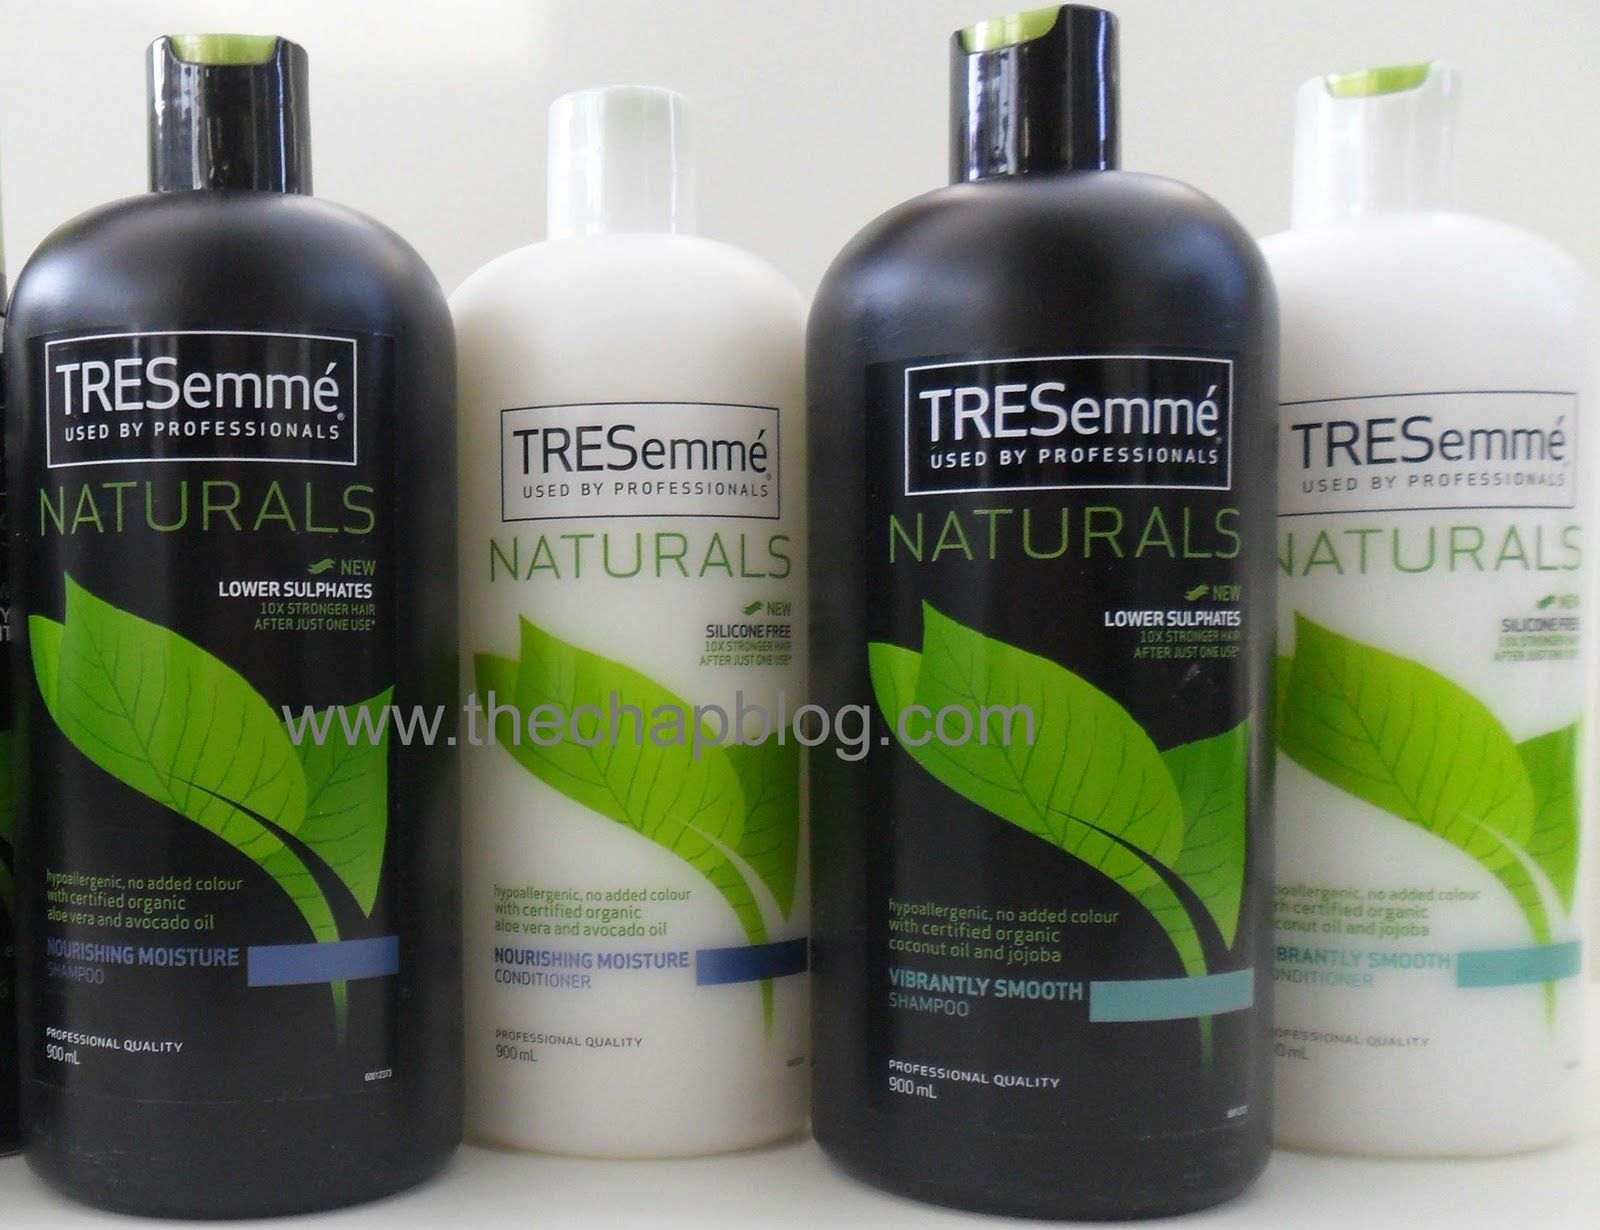 Tresemme Shampoo Need To Try Something New Miss My Long Hair Going To Get It Back This Year Tresemme Shampoo Tresemme Shampoo